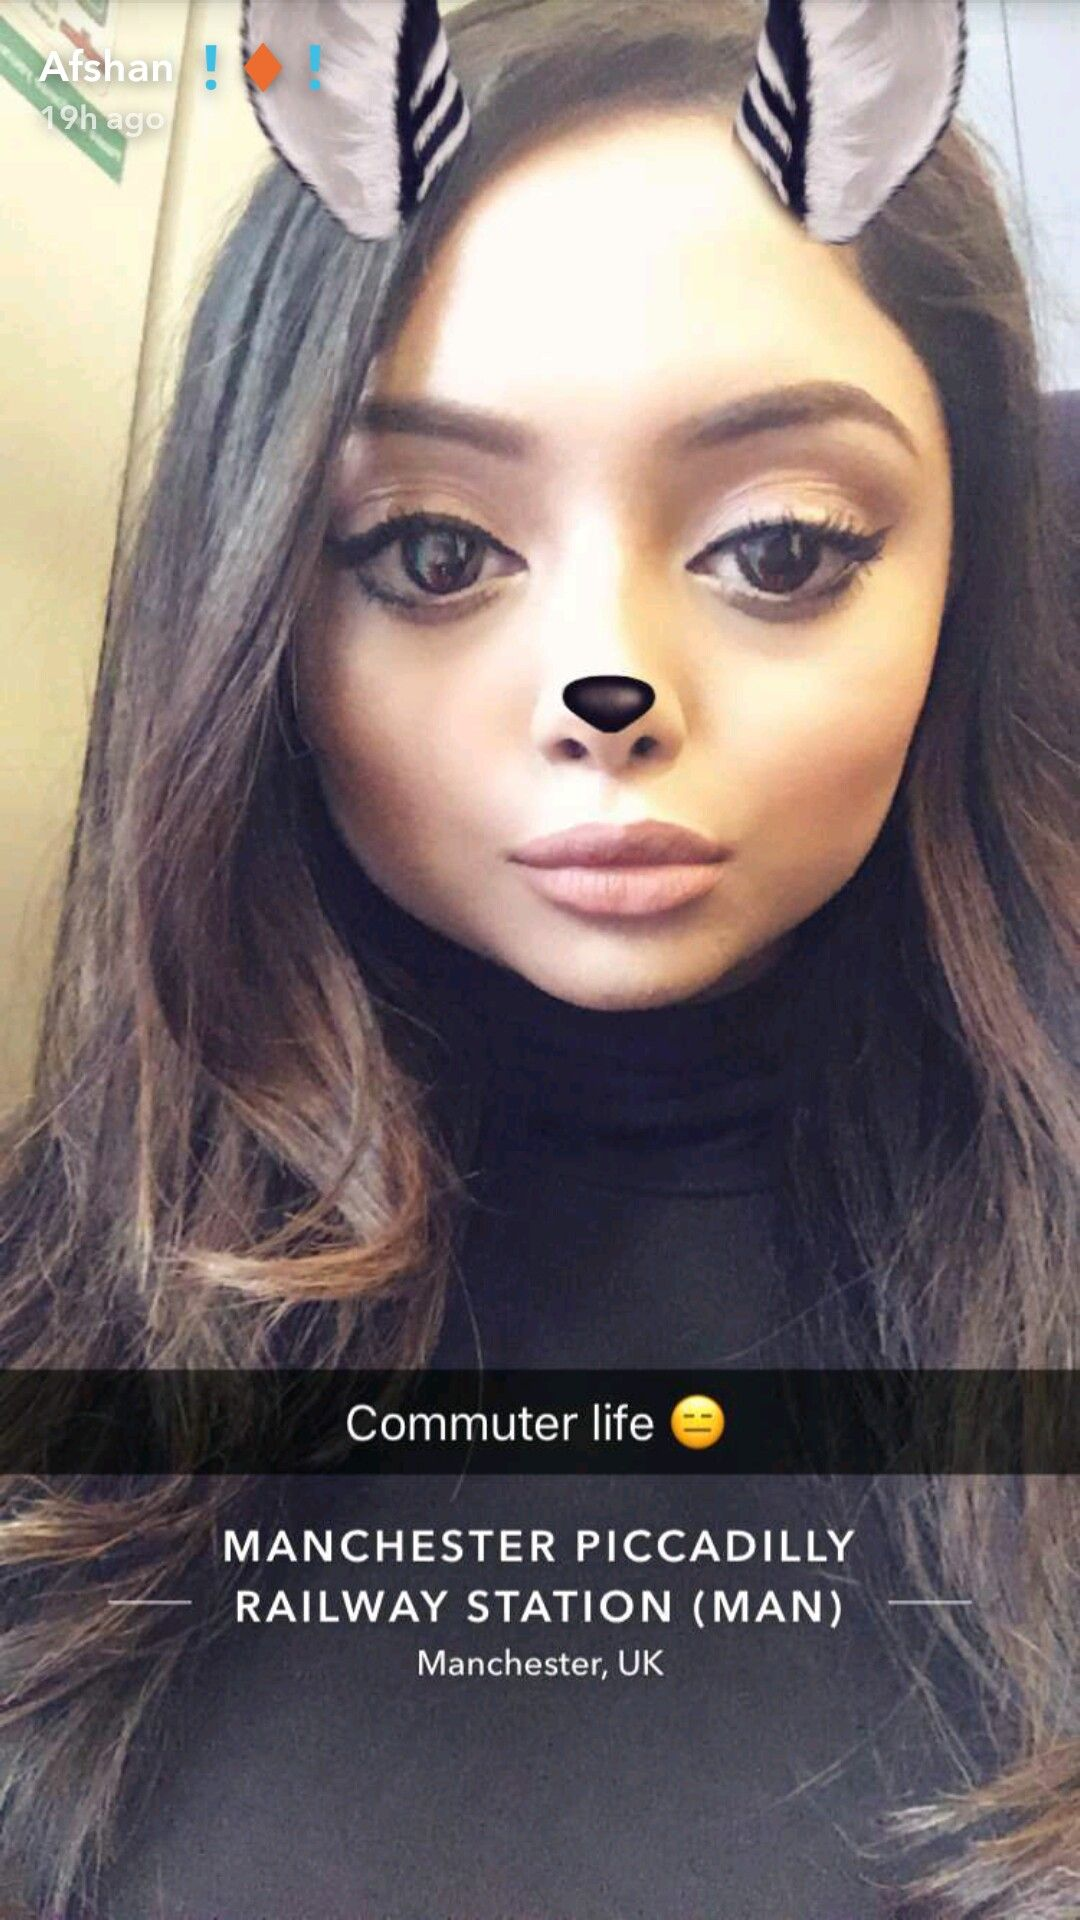 Pin by archana hariprasad on afshan azad pinterest afshan azad thecheapjerseys Image collections